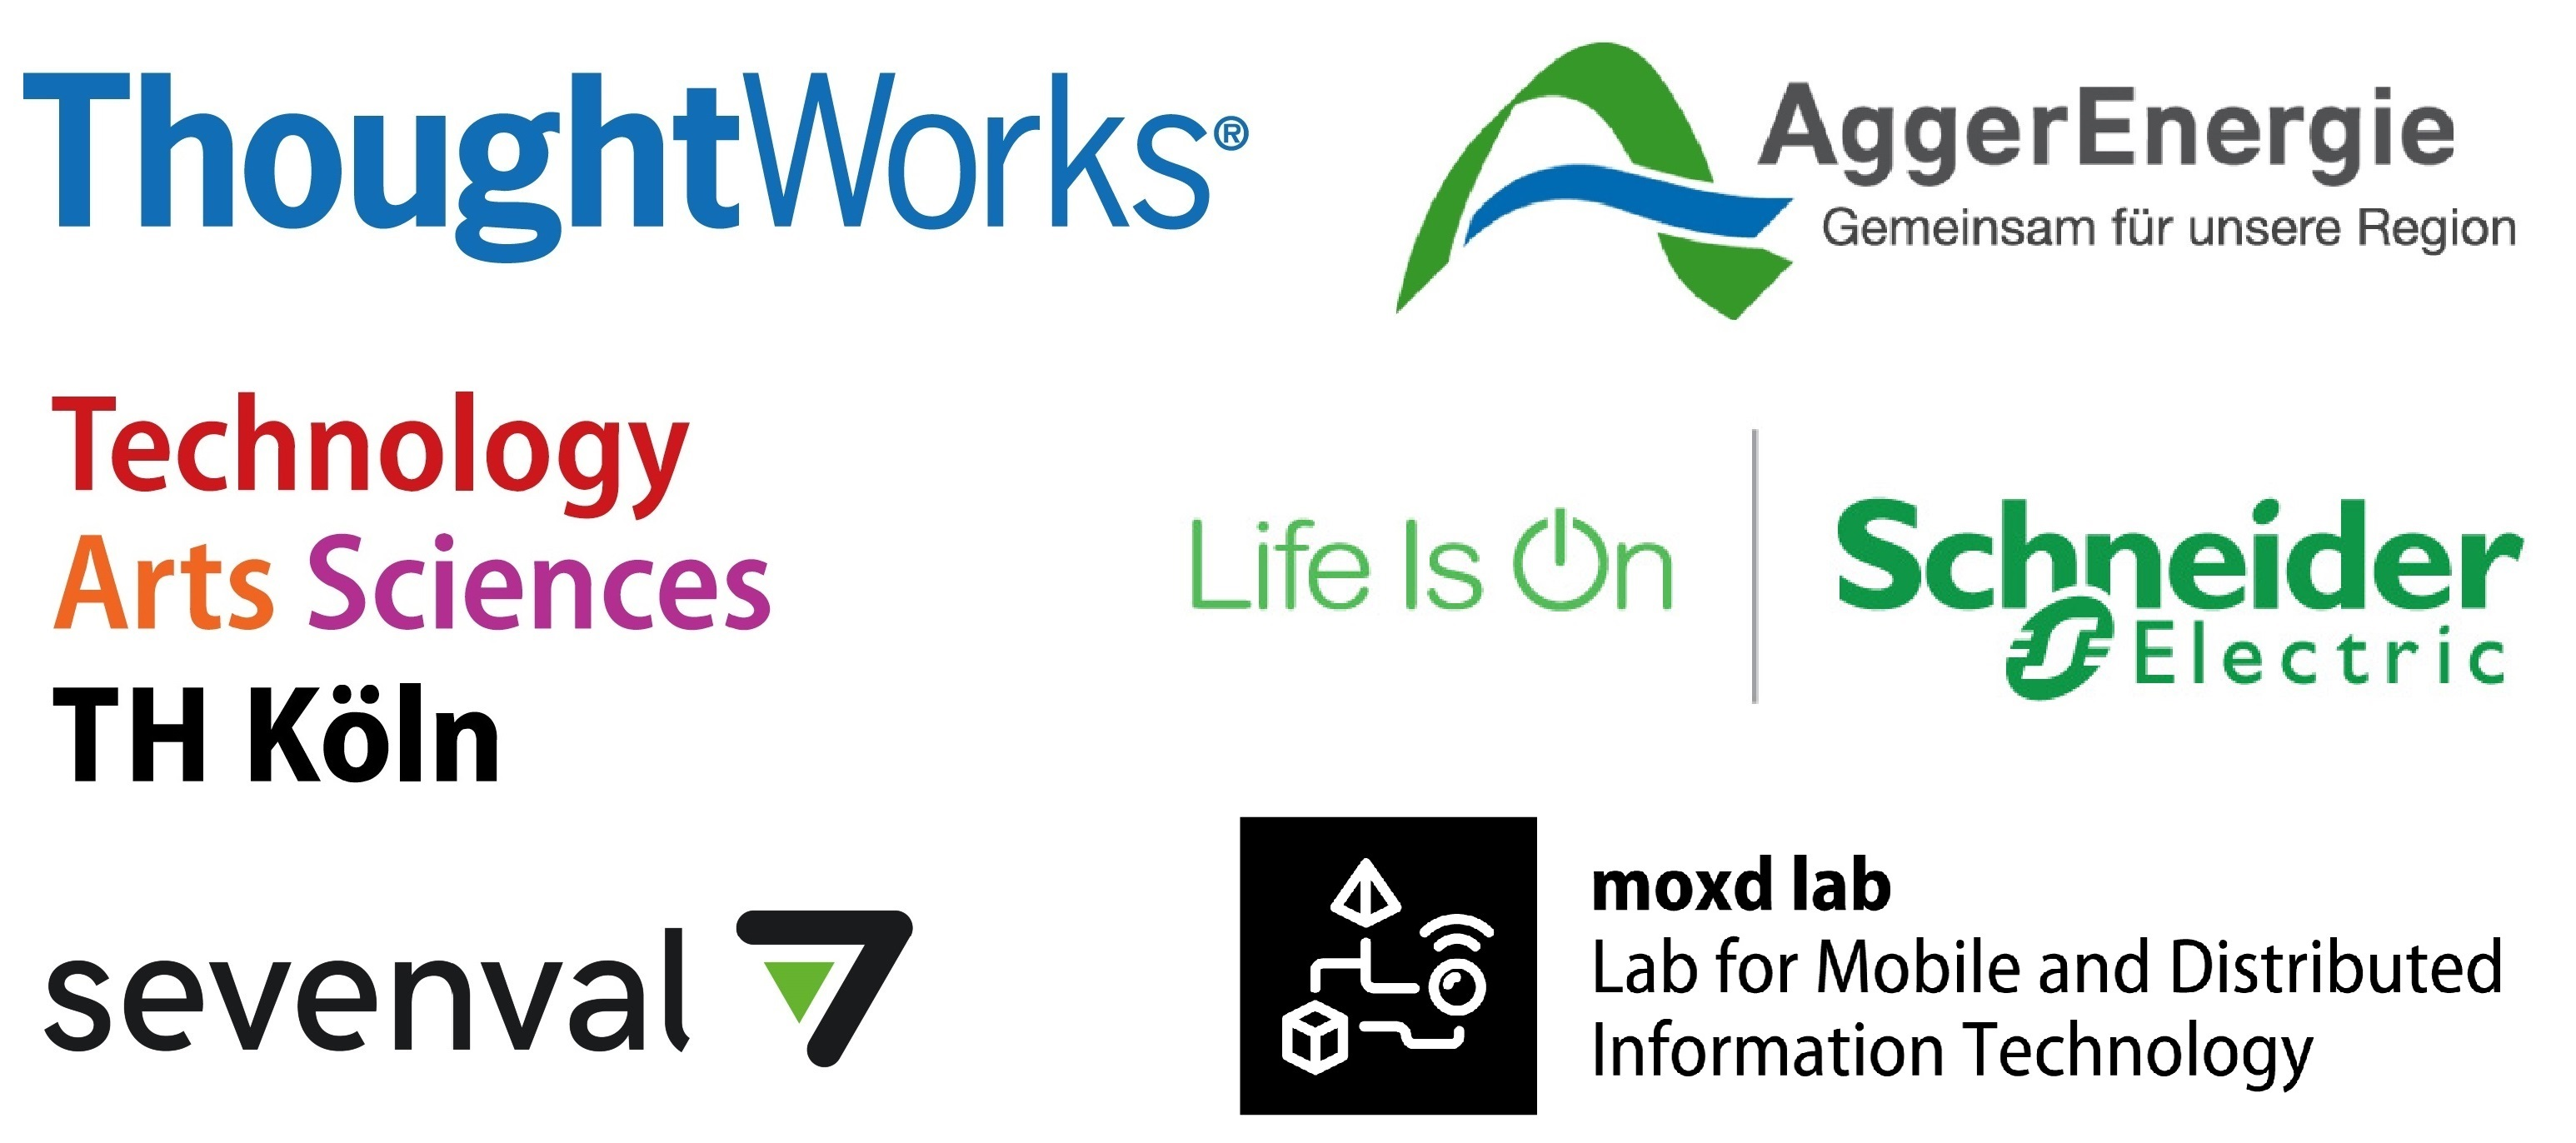 Sponsoren des IoT Workshops: TH Köln, Thoughworks, AggerEnergie, Schneider-Electric, moxd lab und sevenval